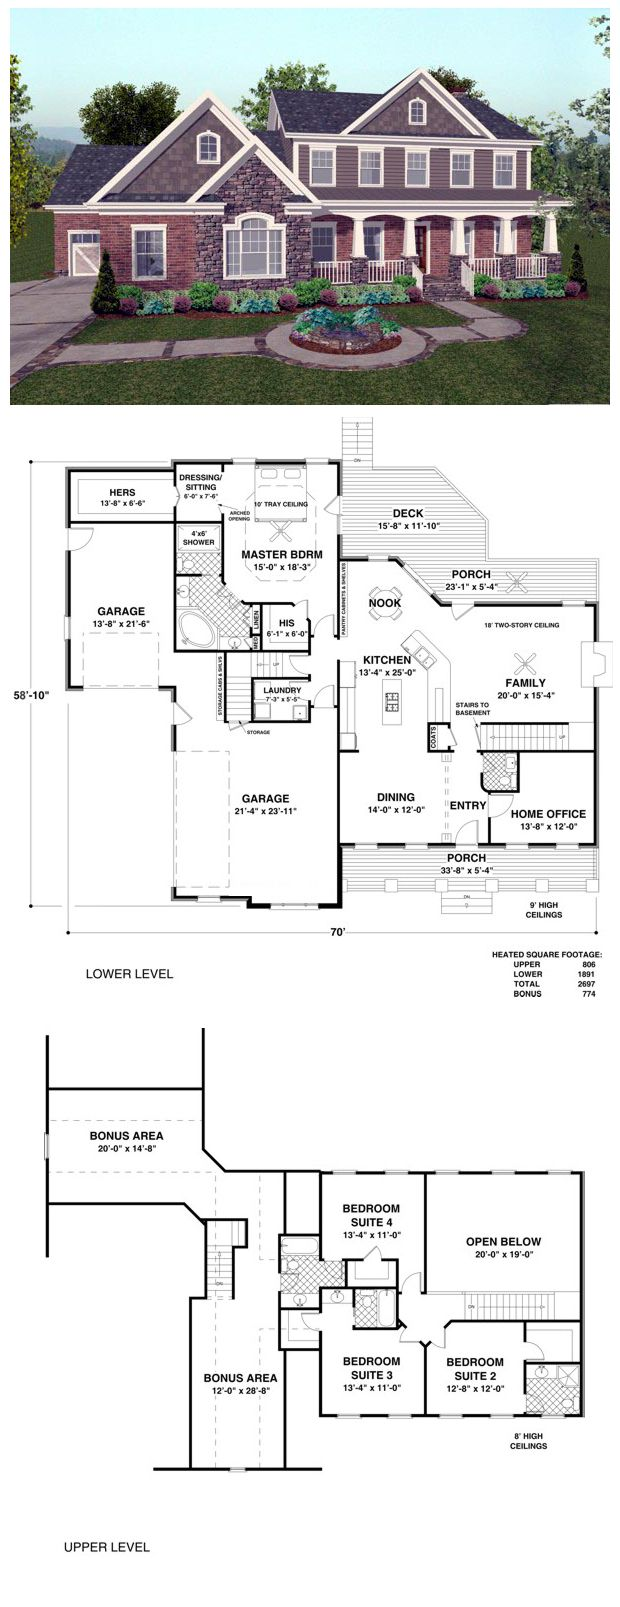 Craftsman Country Home Plan At Cool House Plans Best House Plans House Plans Country House Plan